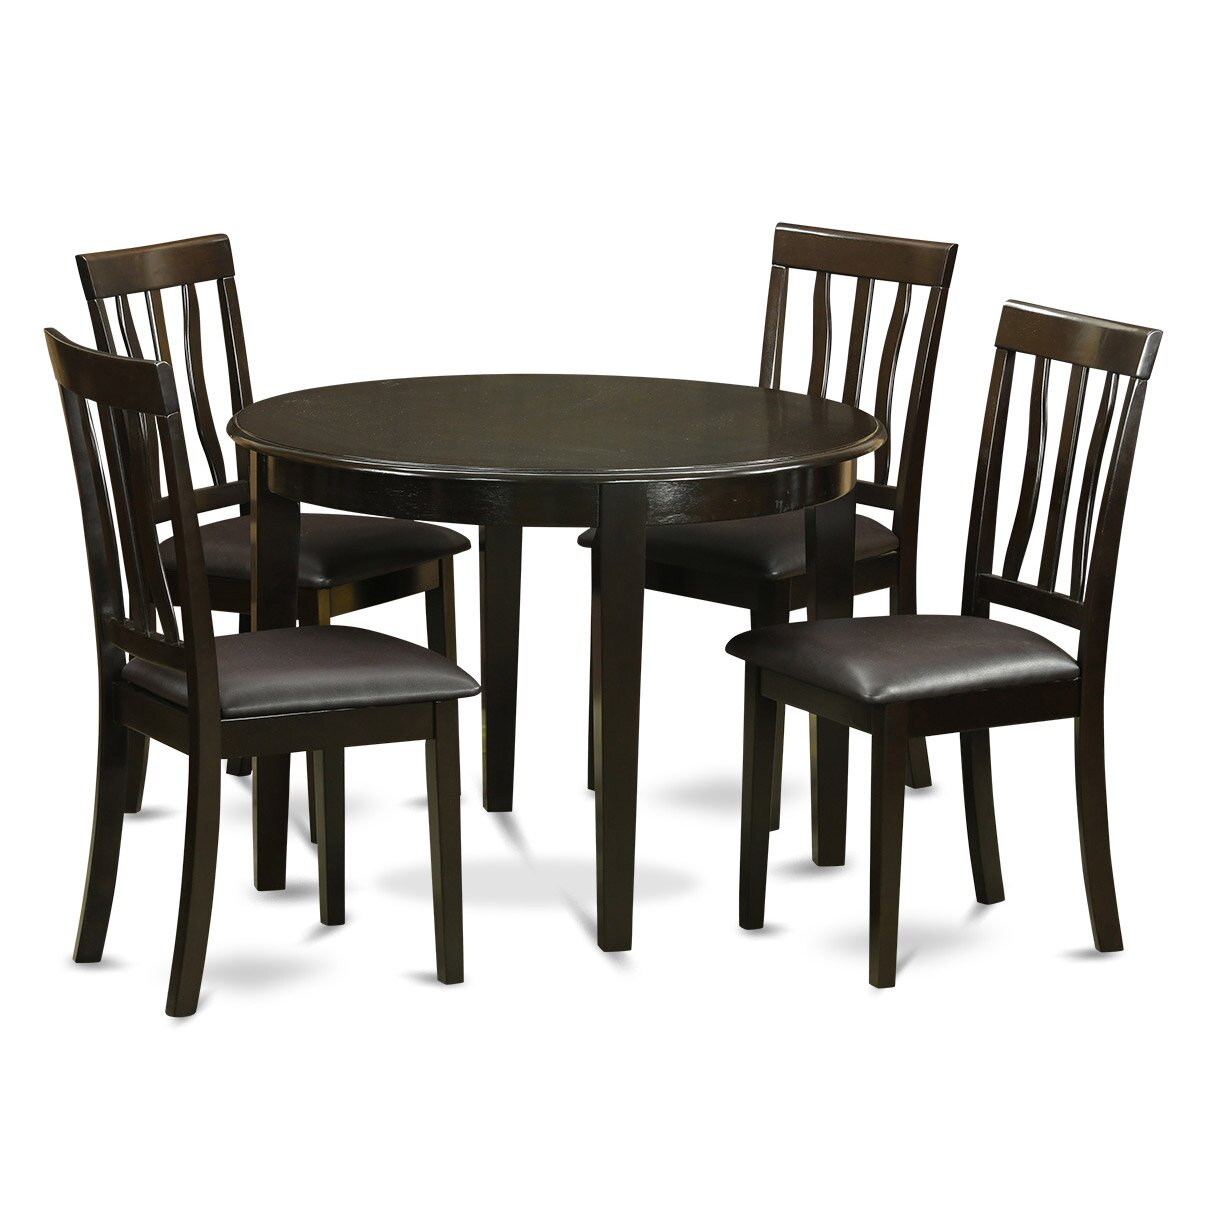 Wooden importers boston 5 piece dining set wayfair for Furniture kitchen set